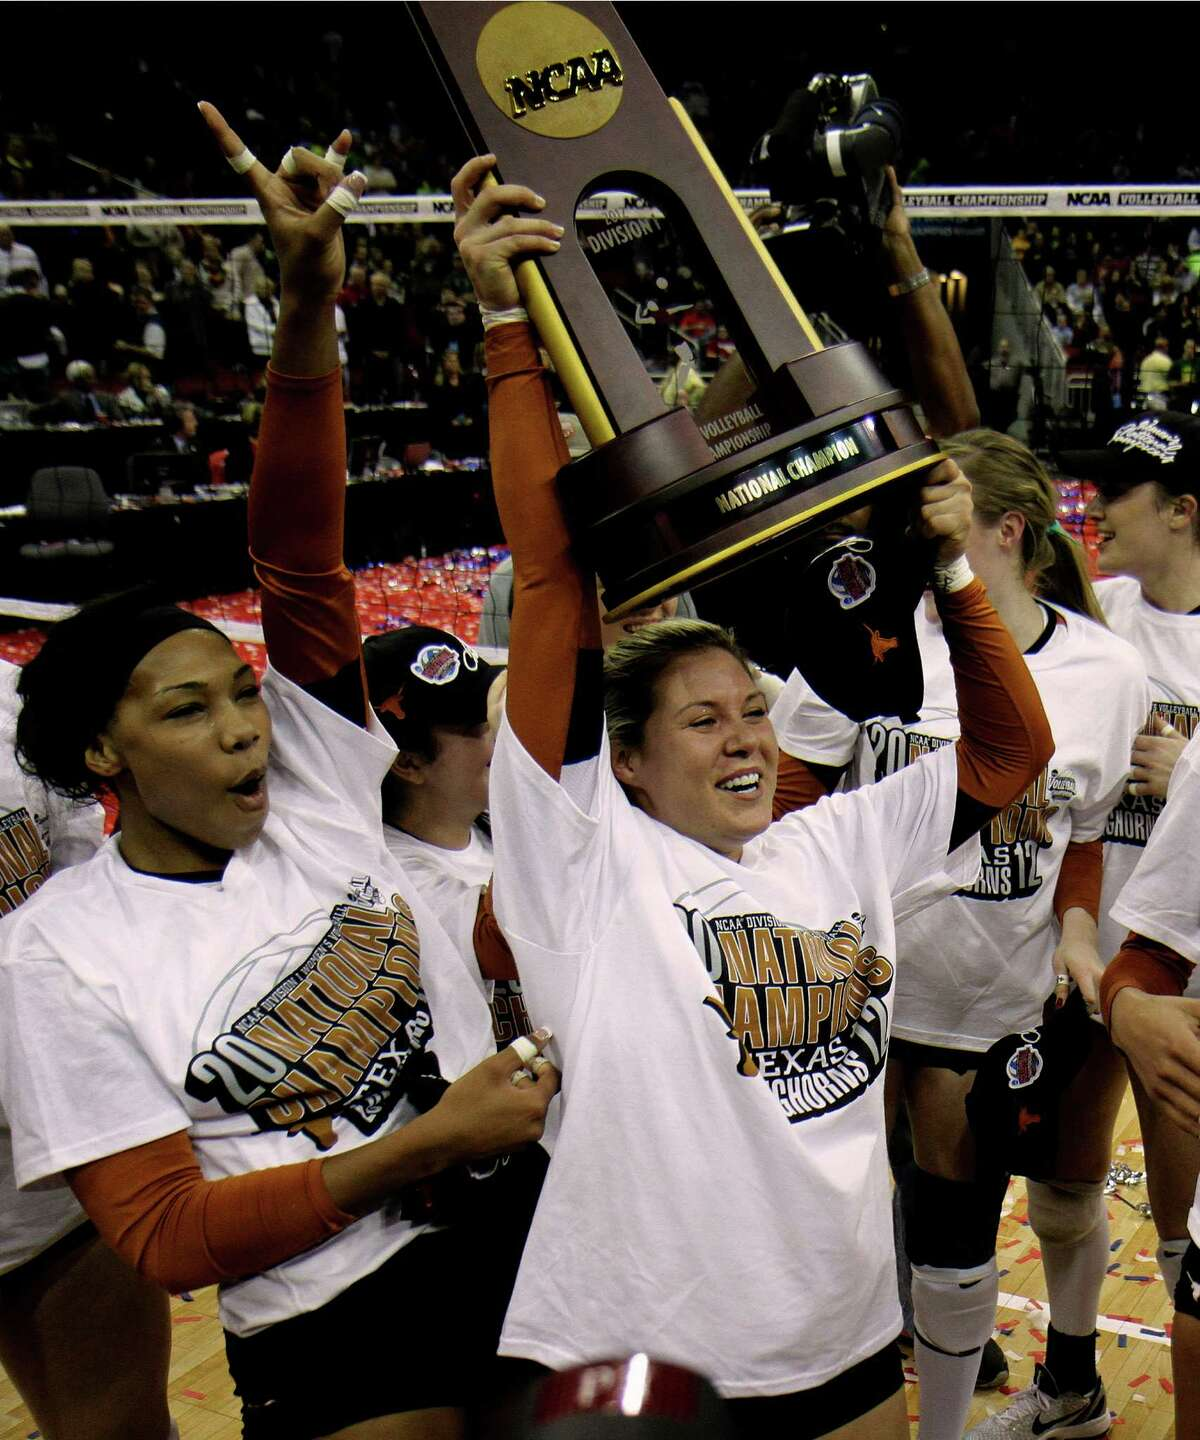 Texas junior Sarah Palmer hoists the trophy after defeating Oregon in the finals of the NCAA college women's volleyball tournament over Oregon in Louisville, Ky., Saturday, Dec. 15, 2012. Khat Bell, left, reacts. (AP Photo/Garry Jones)